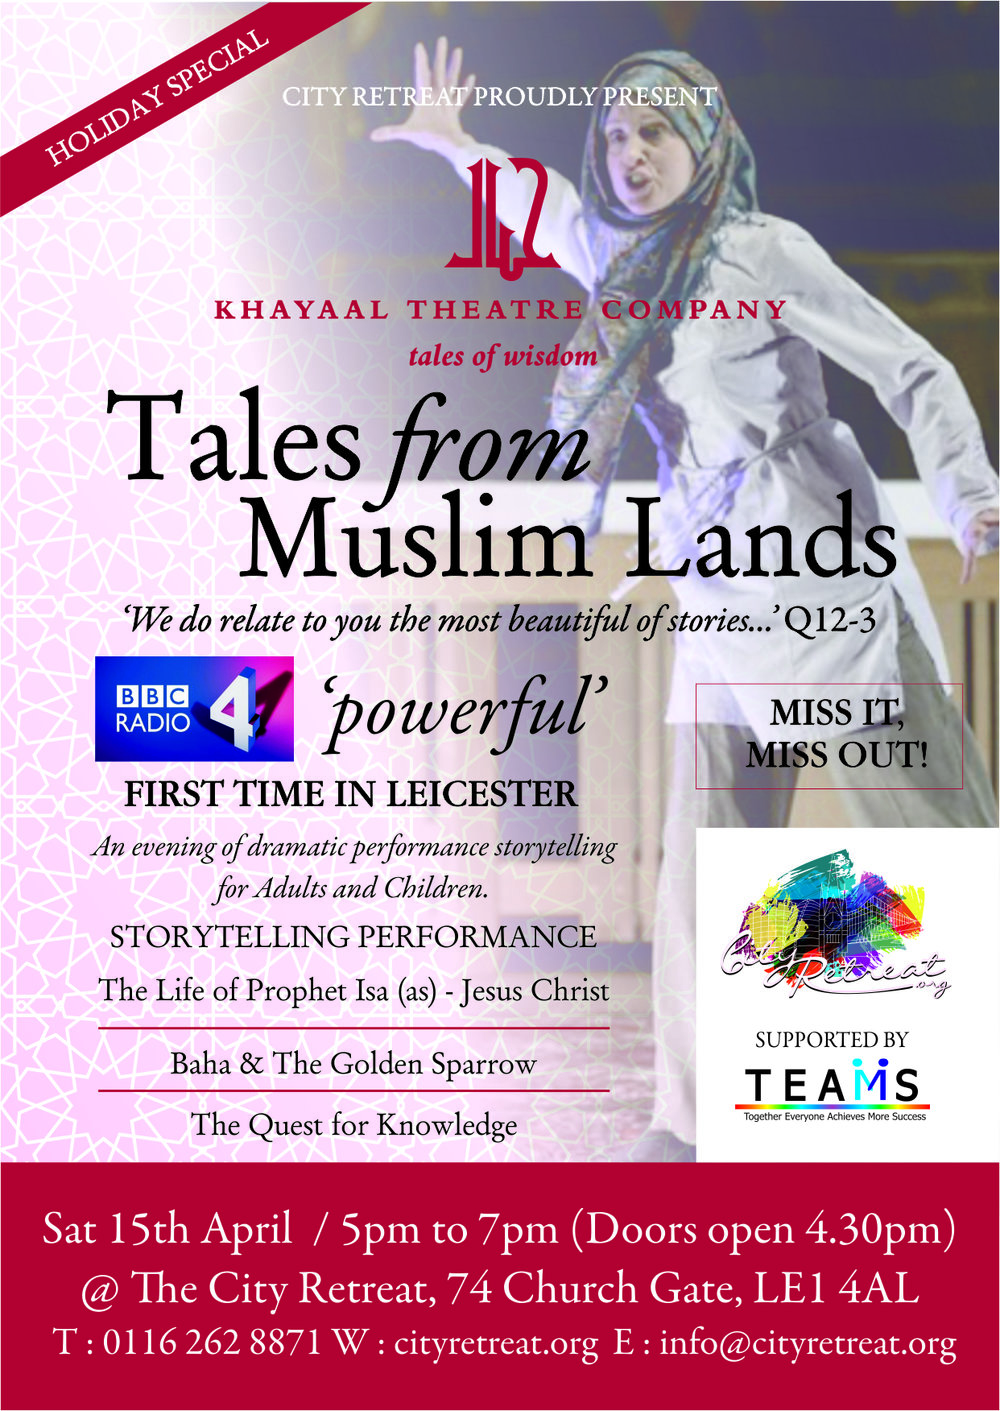 Photo Credit: ©Saleh Ahmed | Poster Credit: City Retreat, Leicester